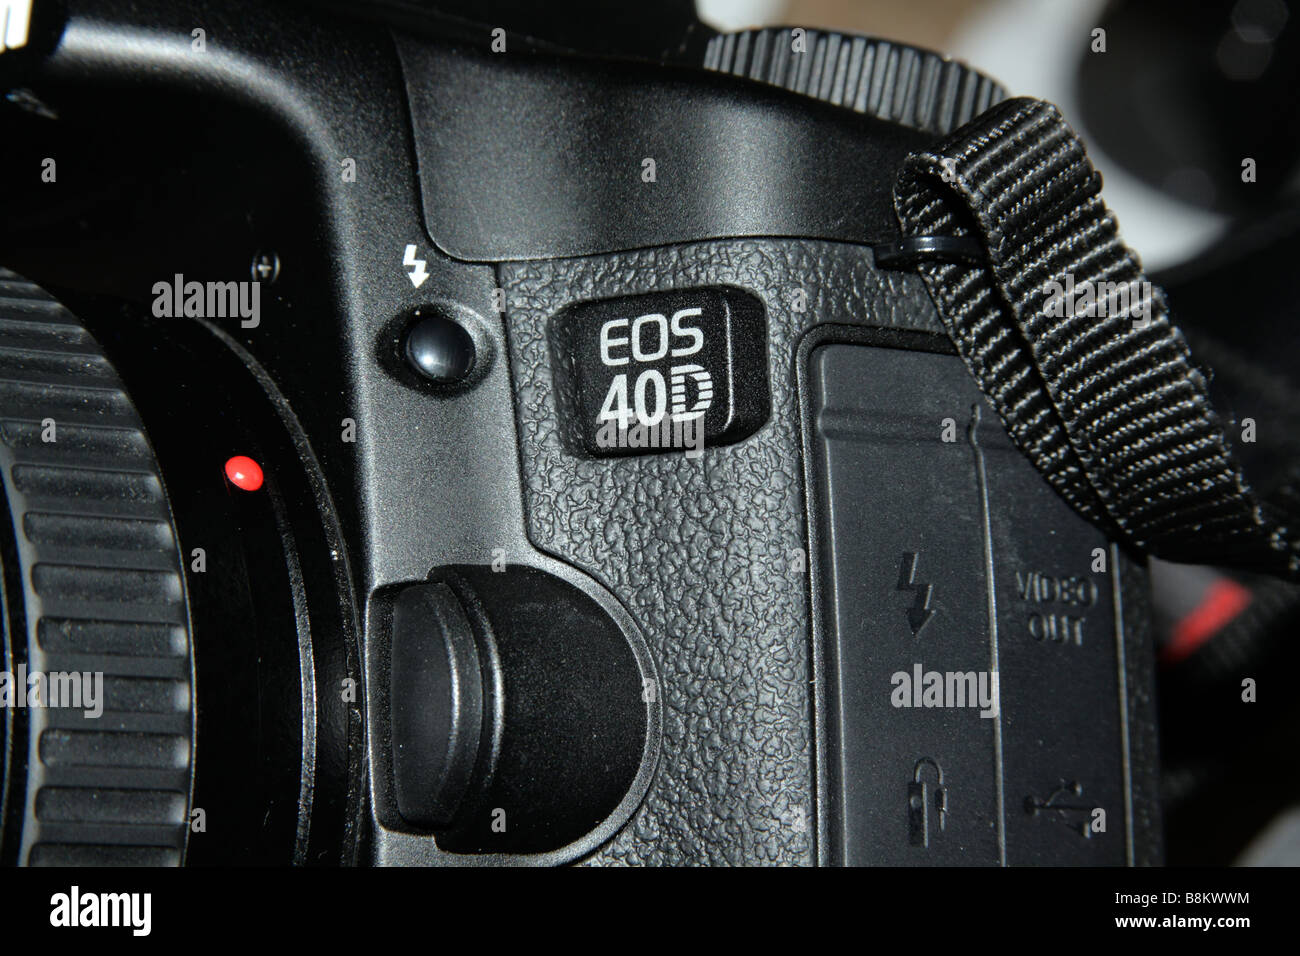 Canon EOS 40D logo and camera side, 2008 Stock Photo